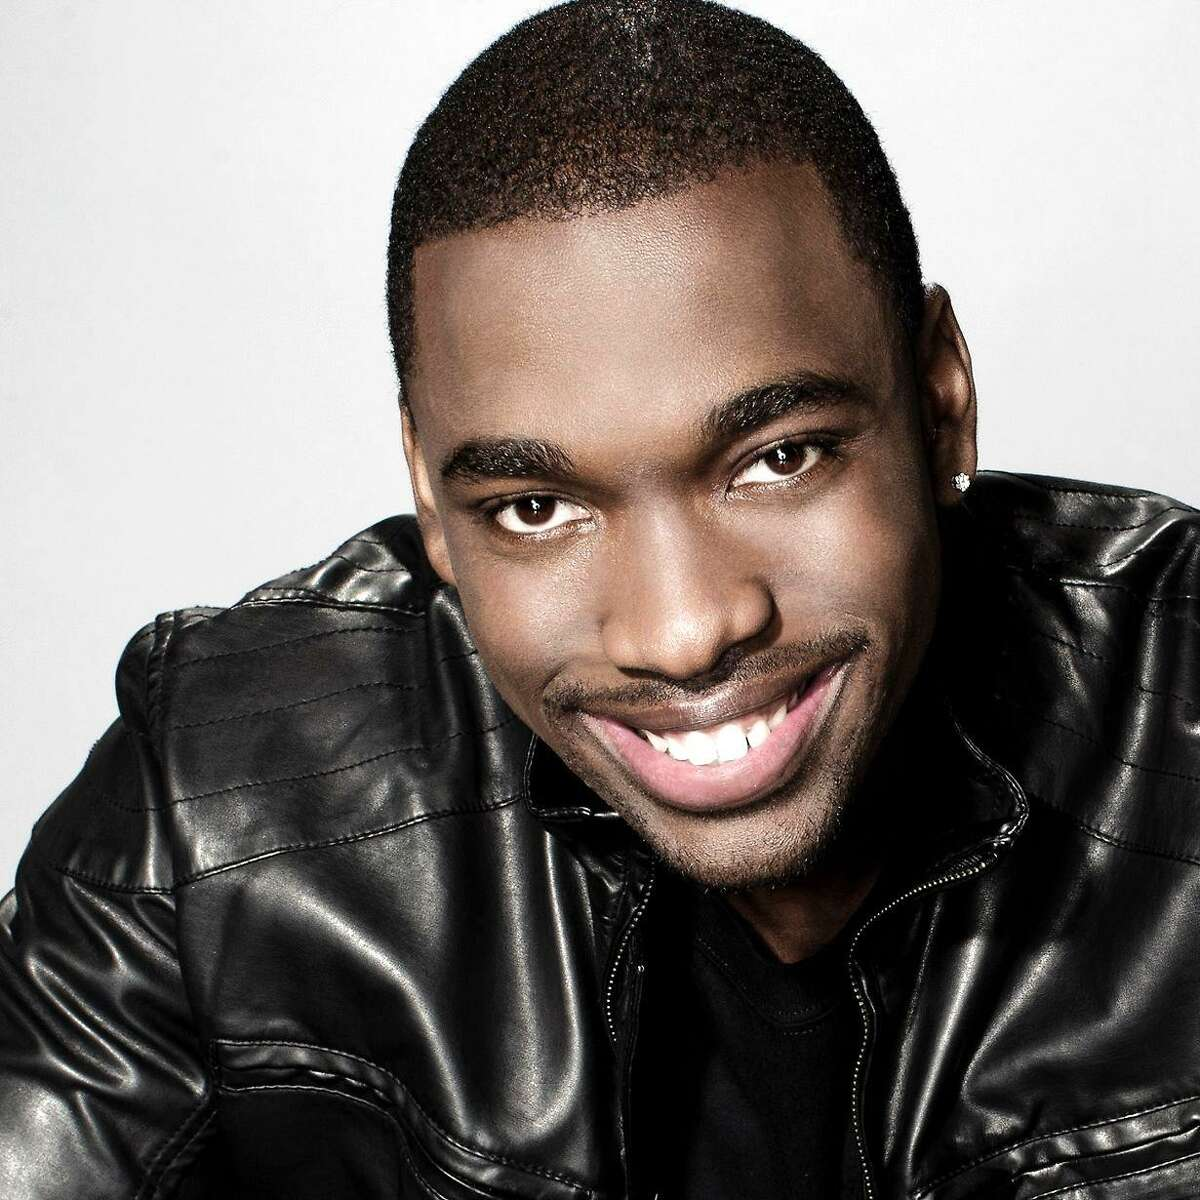 Actor and stand up comedian Jay Pharaoh will perform in four shows at the Funny Bone Comedy Club in Manchester on Friday and Saturday, Jan. 25-26.